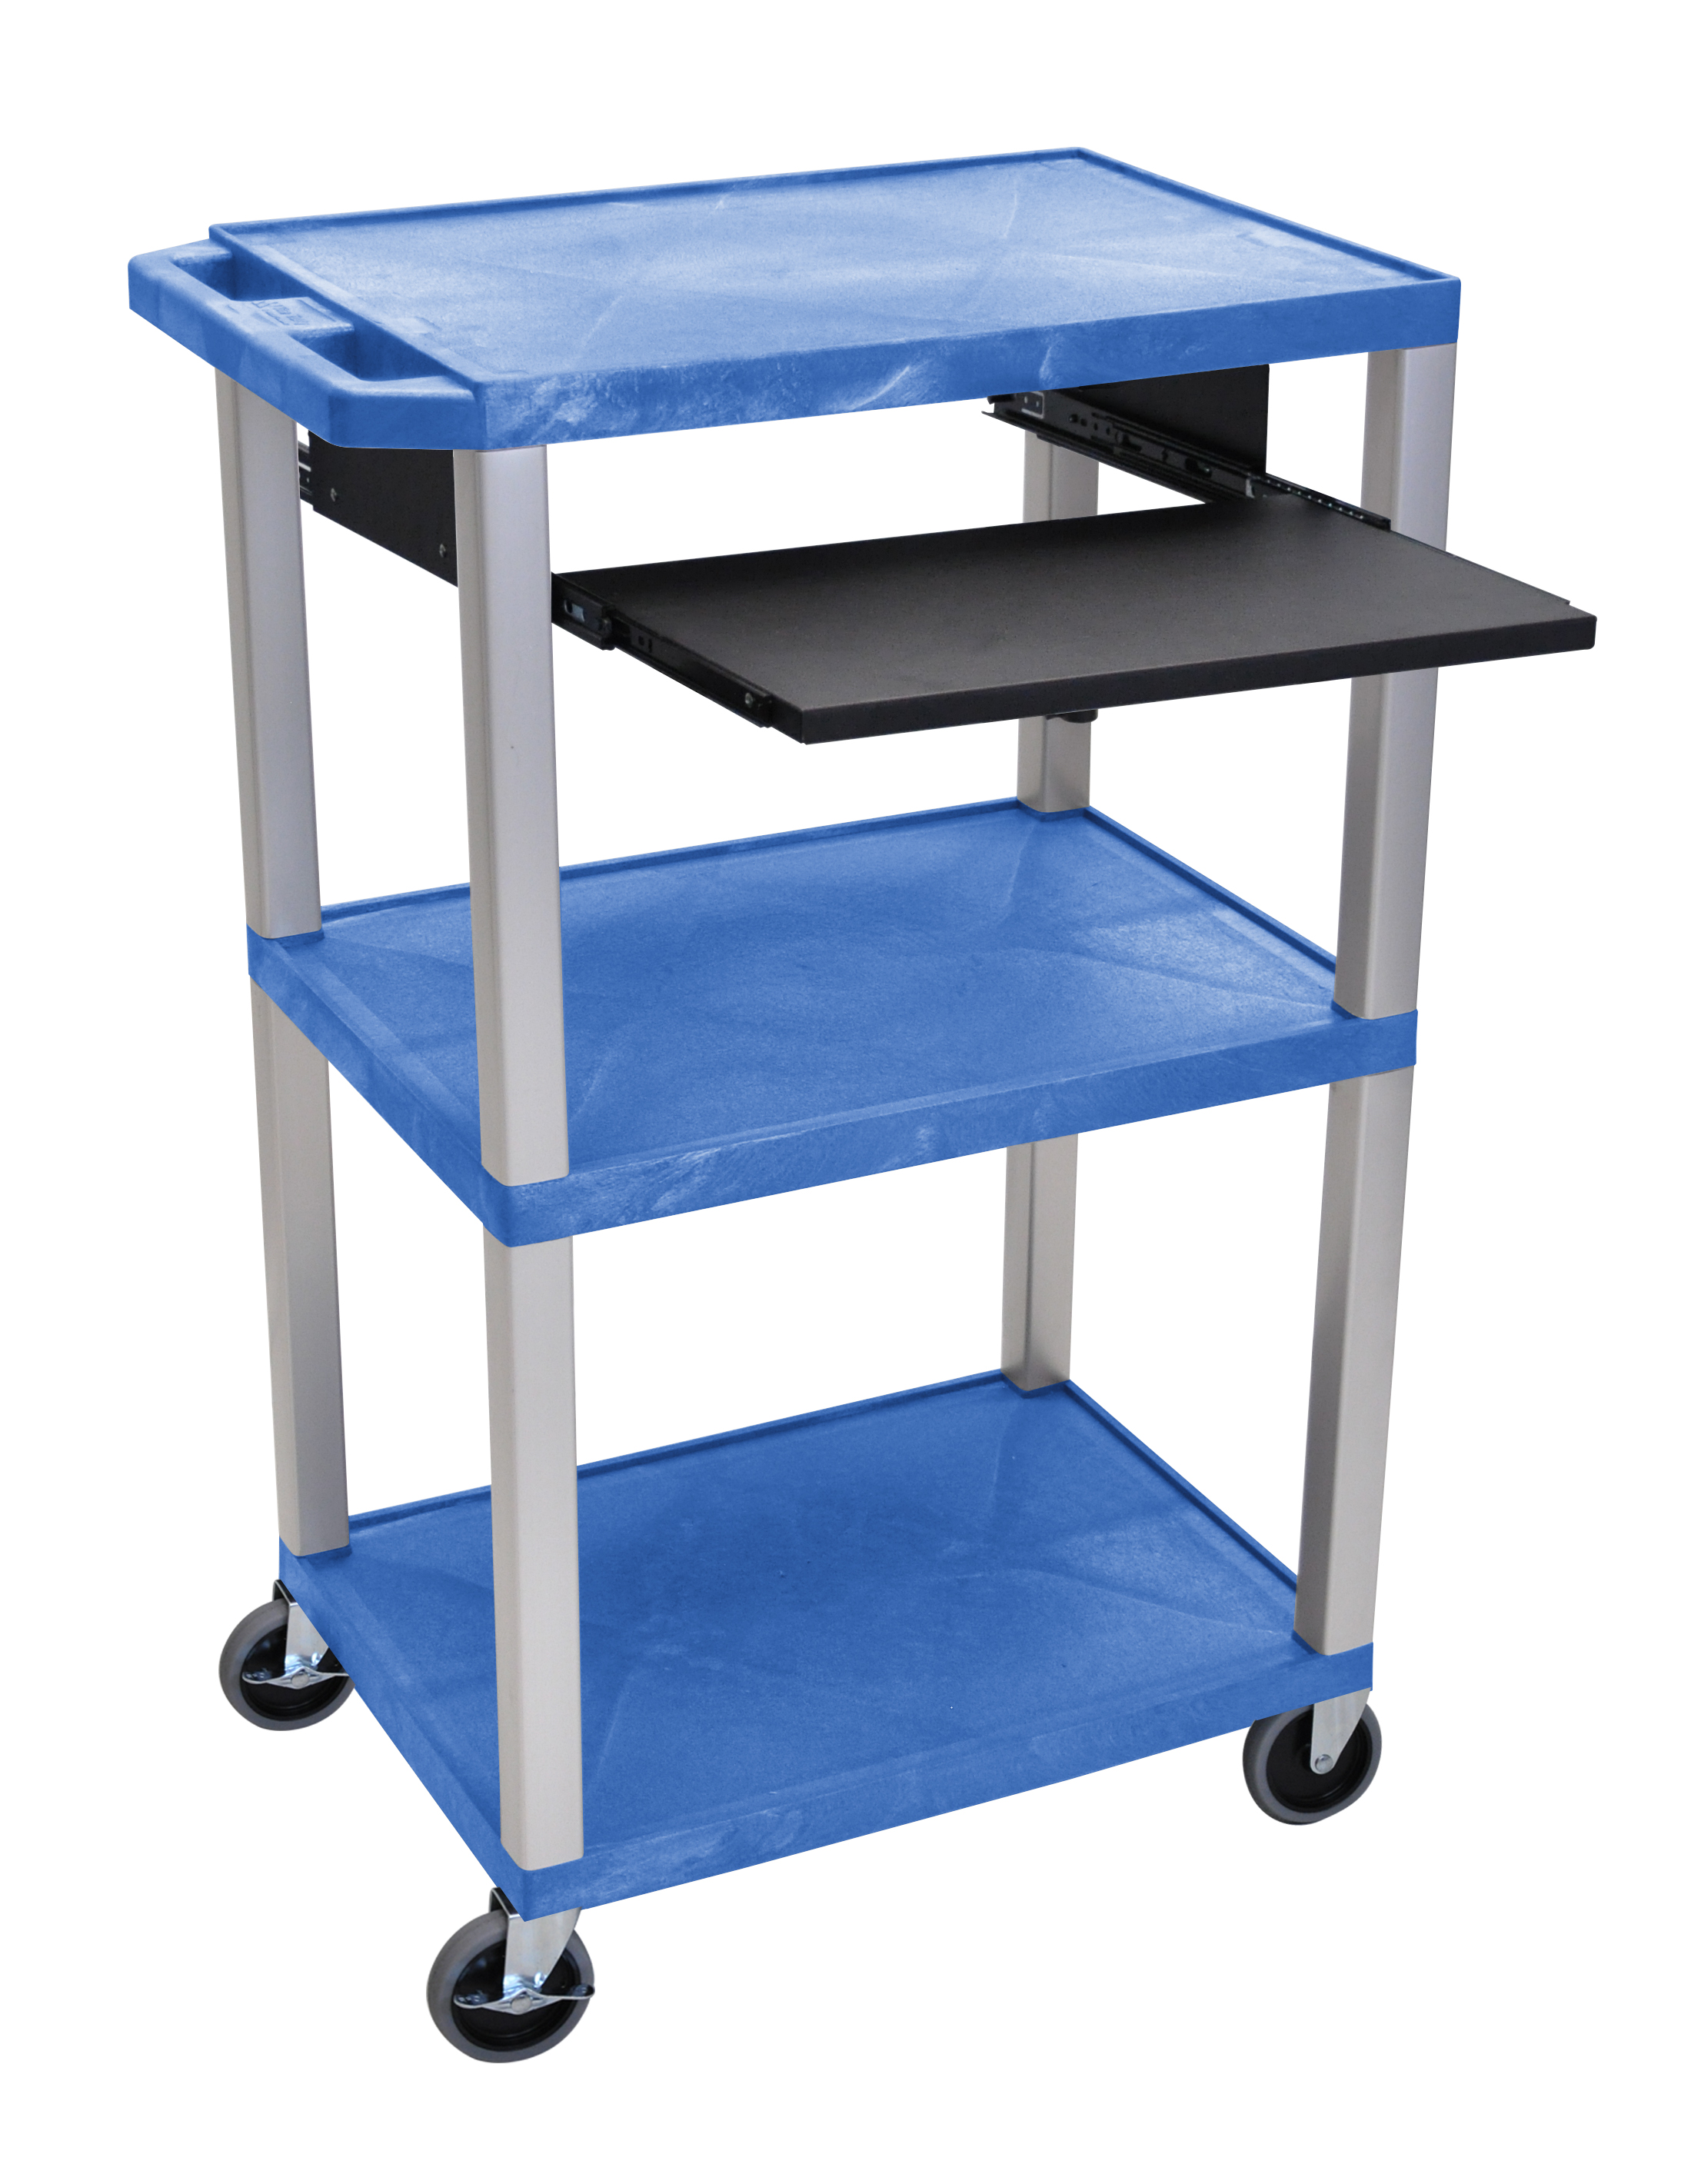 Offex Presentation Cart with Open Shelves and Pull Out Tray Blue and Nickel